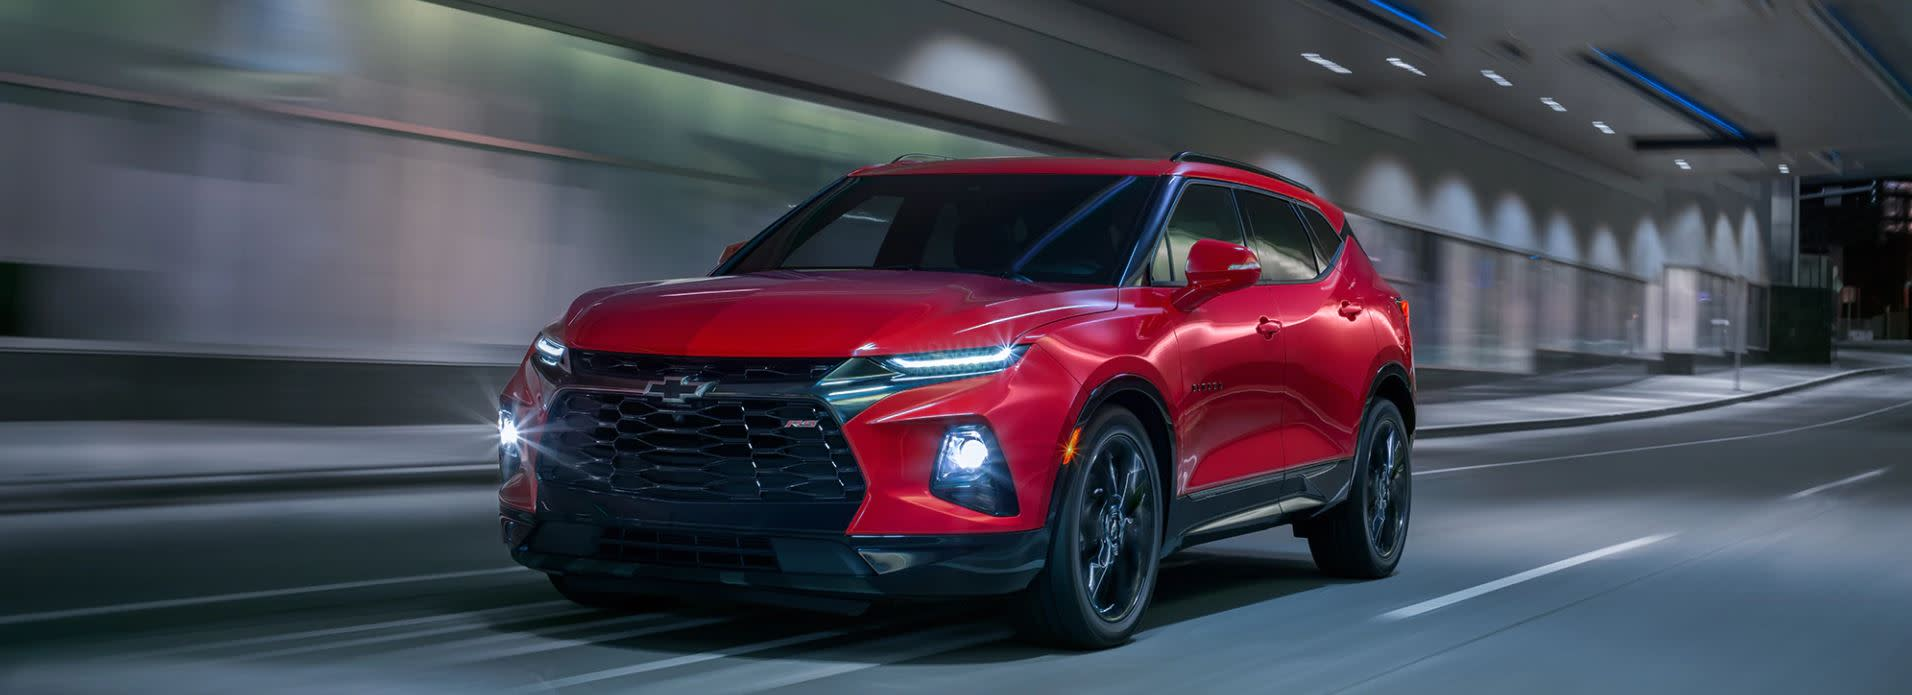 2019 Chevrolet Blazer for Sale near Homewood, IL